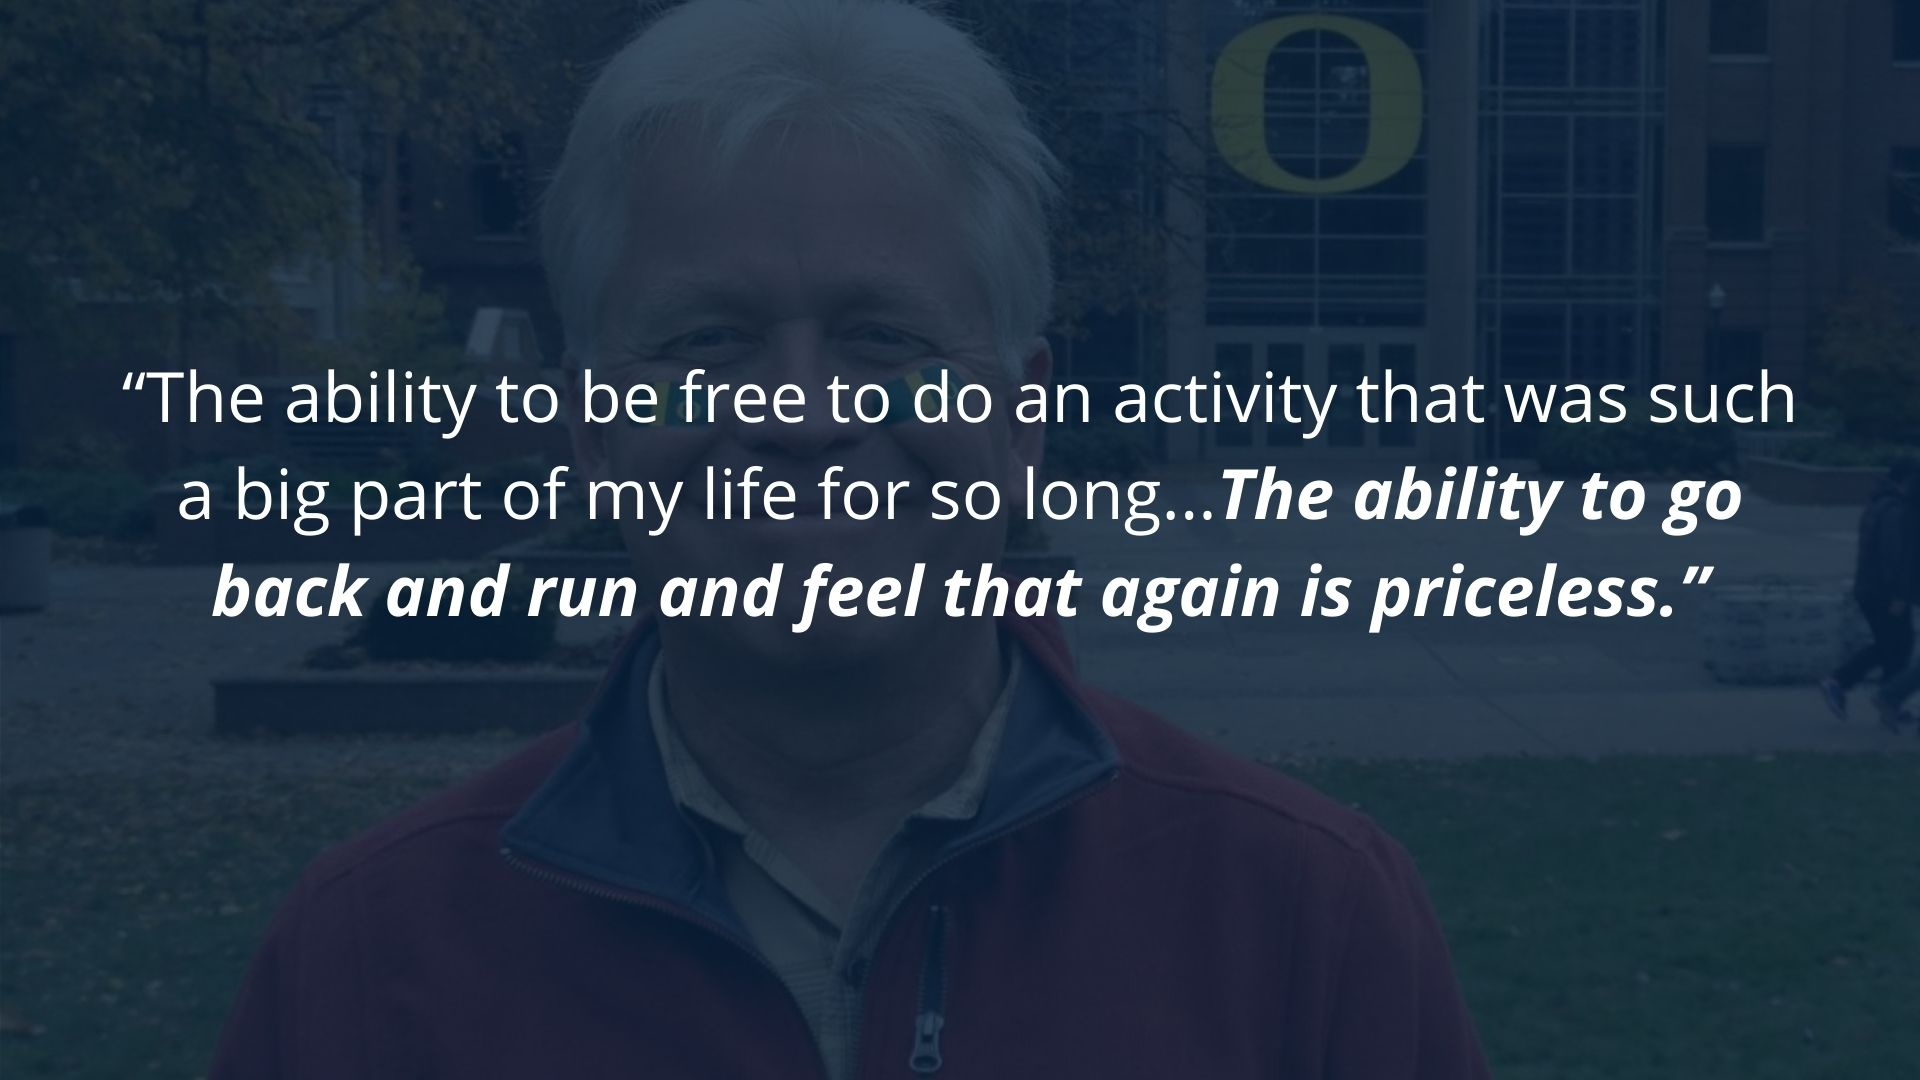 1-on-1 personal training Client says he is free to do an activity that was a big part of his life